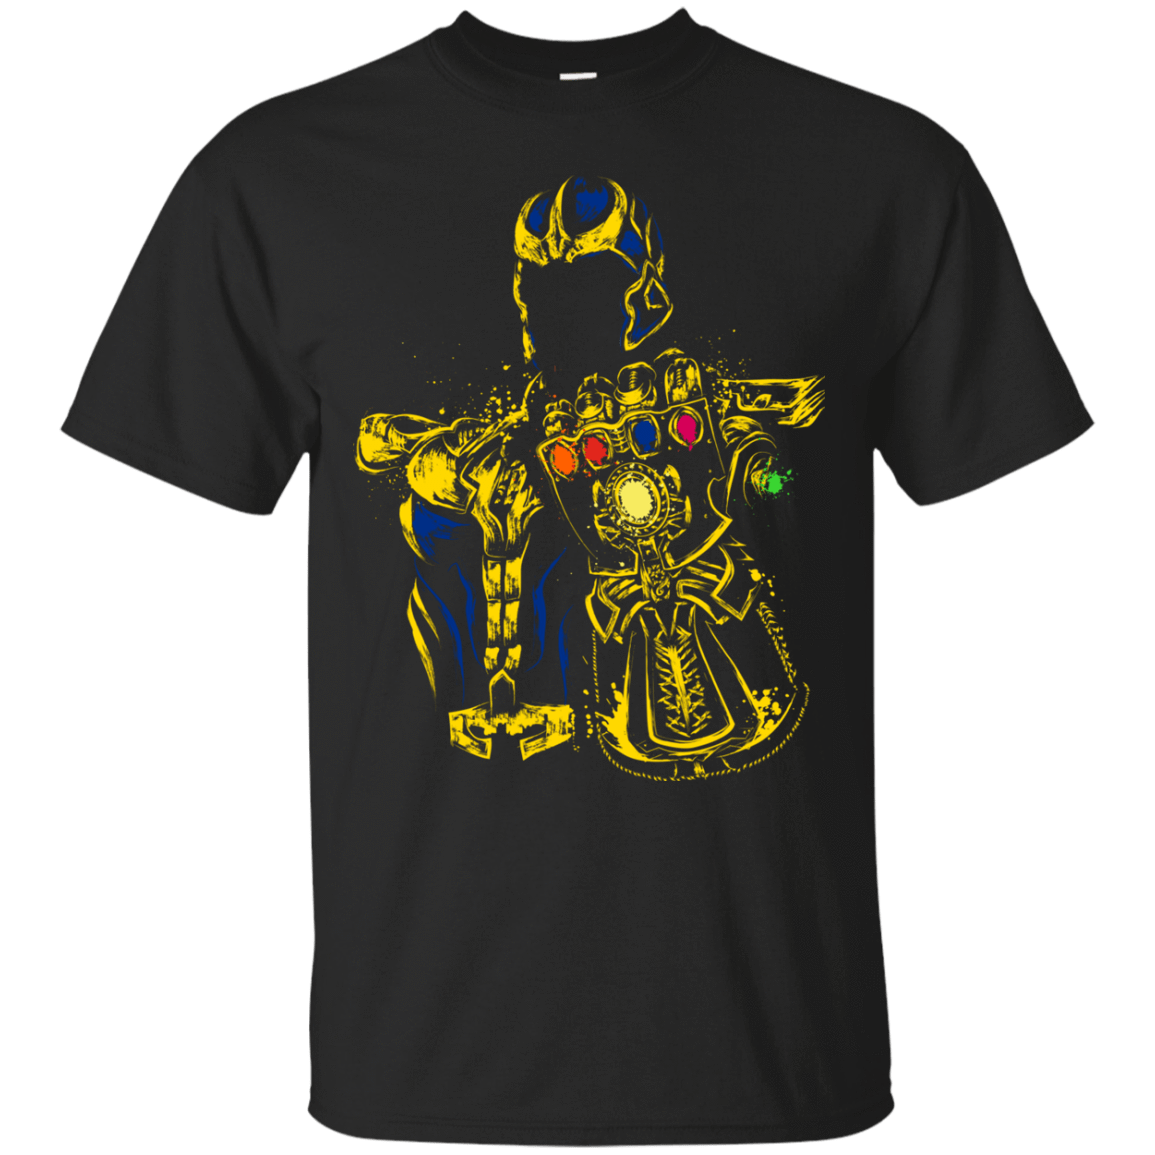 The Mad Titan T-Shirt